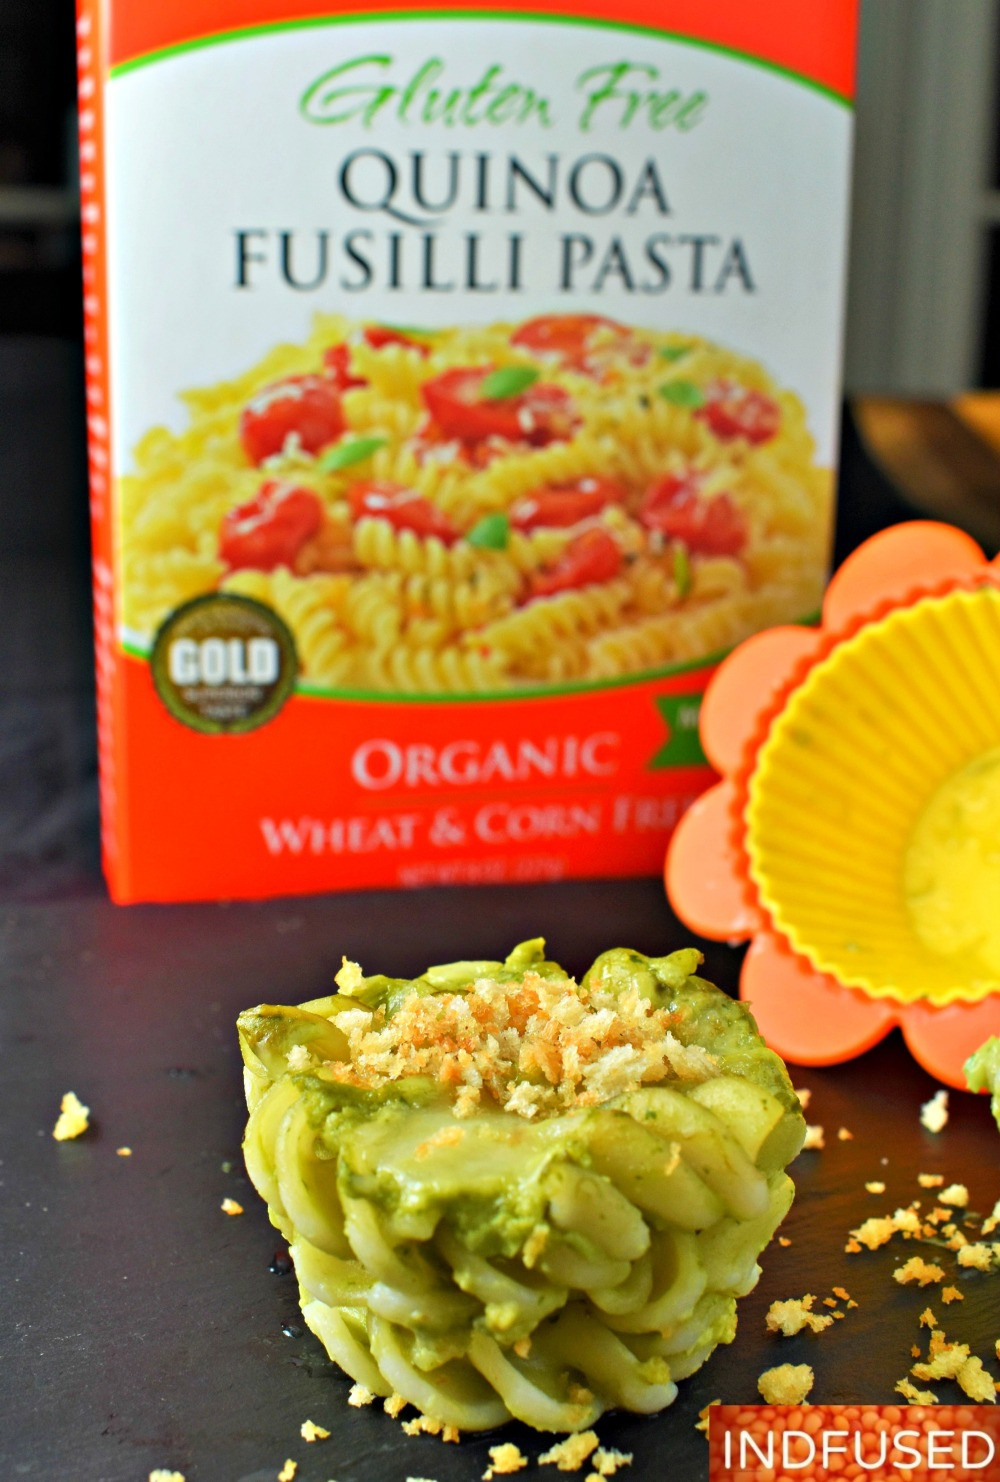 Vegetarian, gluten free Tresomega quinoa fusilli in delectable avocado sauce topped with fontina and gluten free bread crumbs! makes 8 servings.